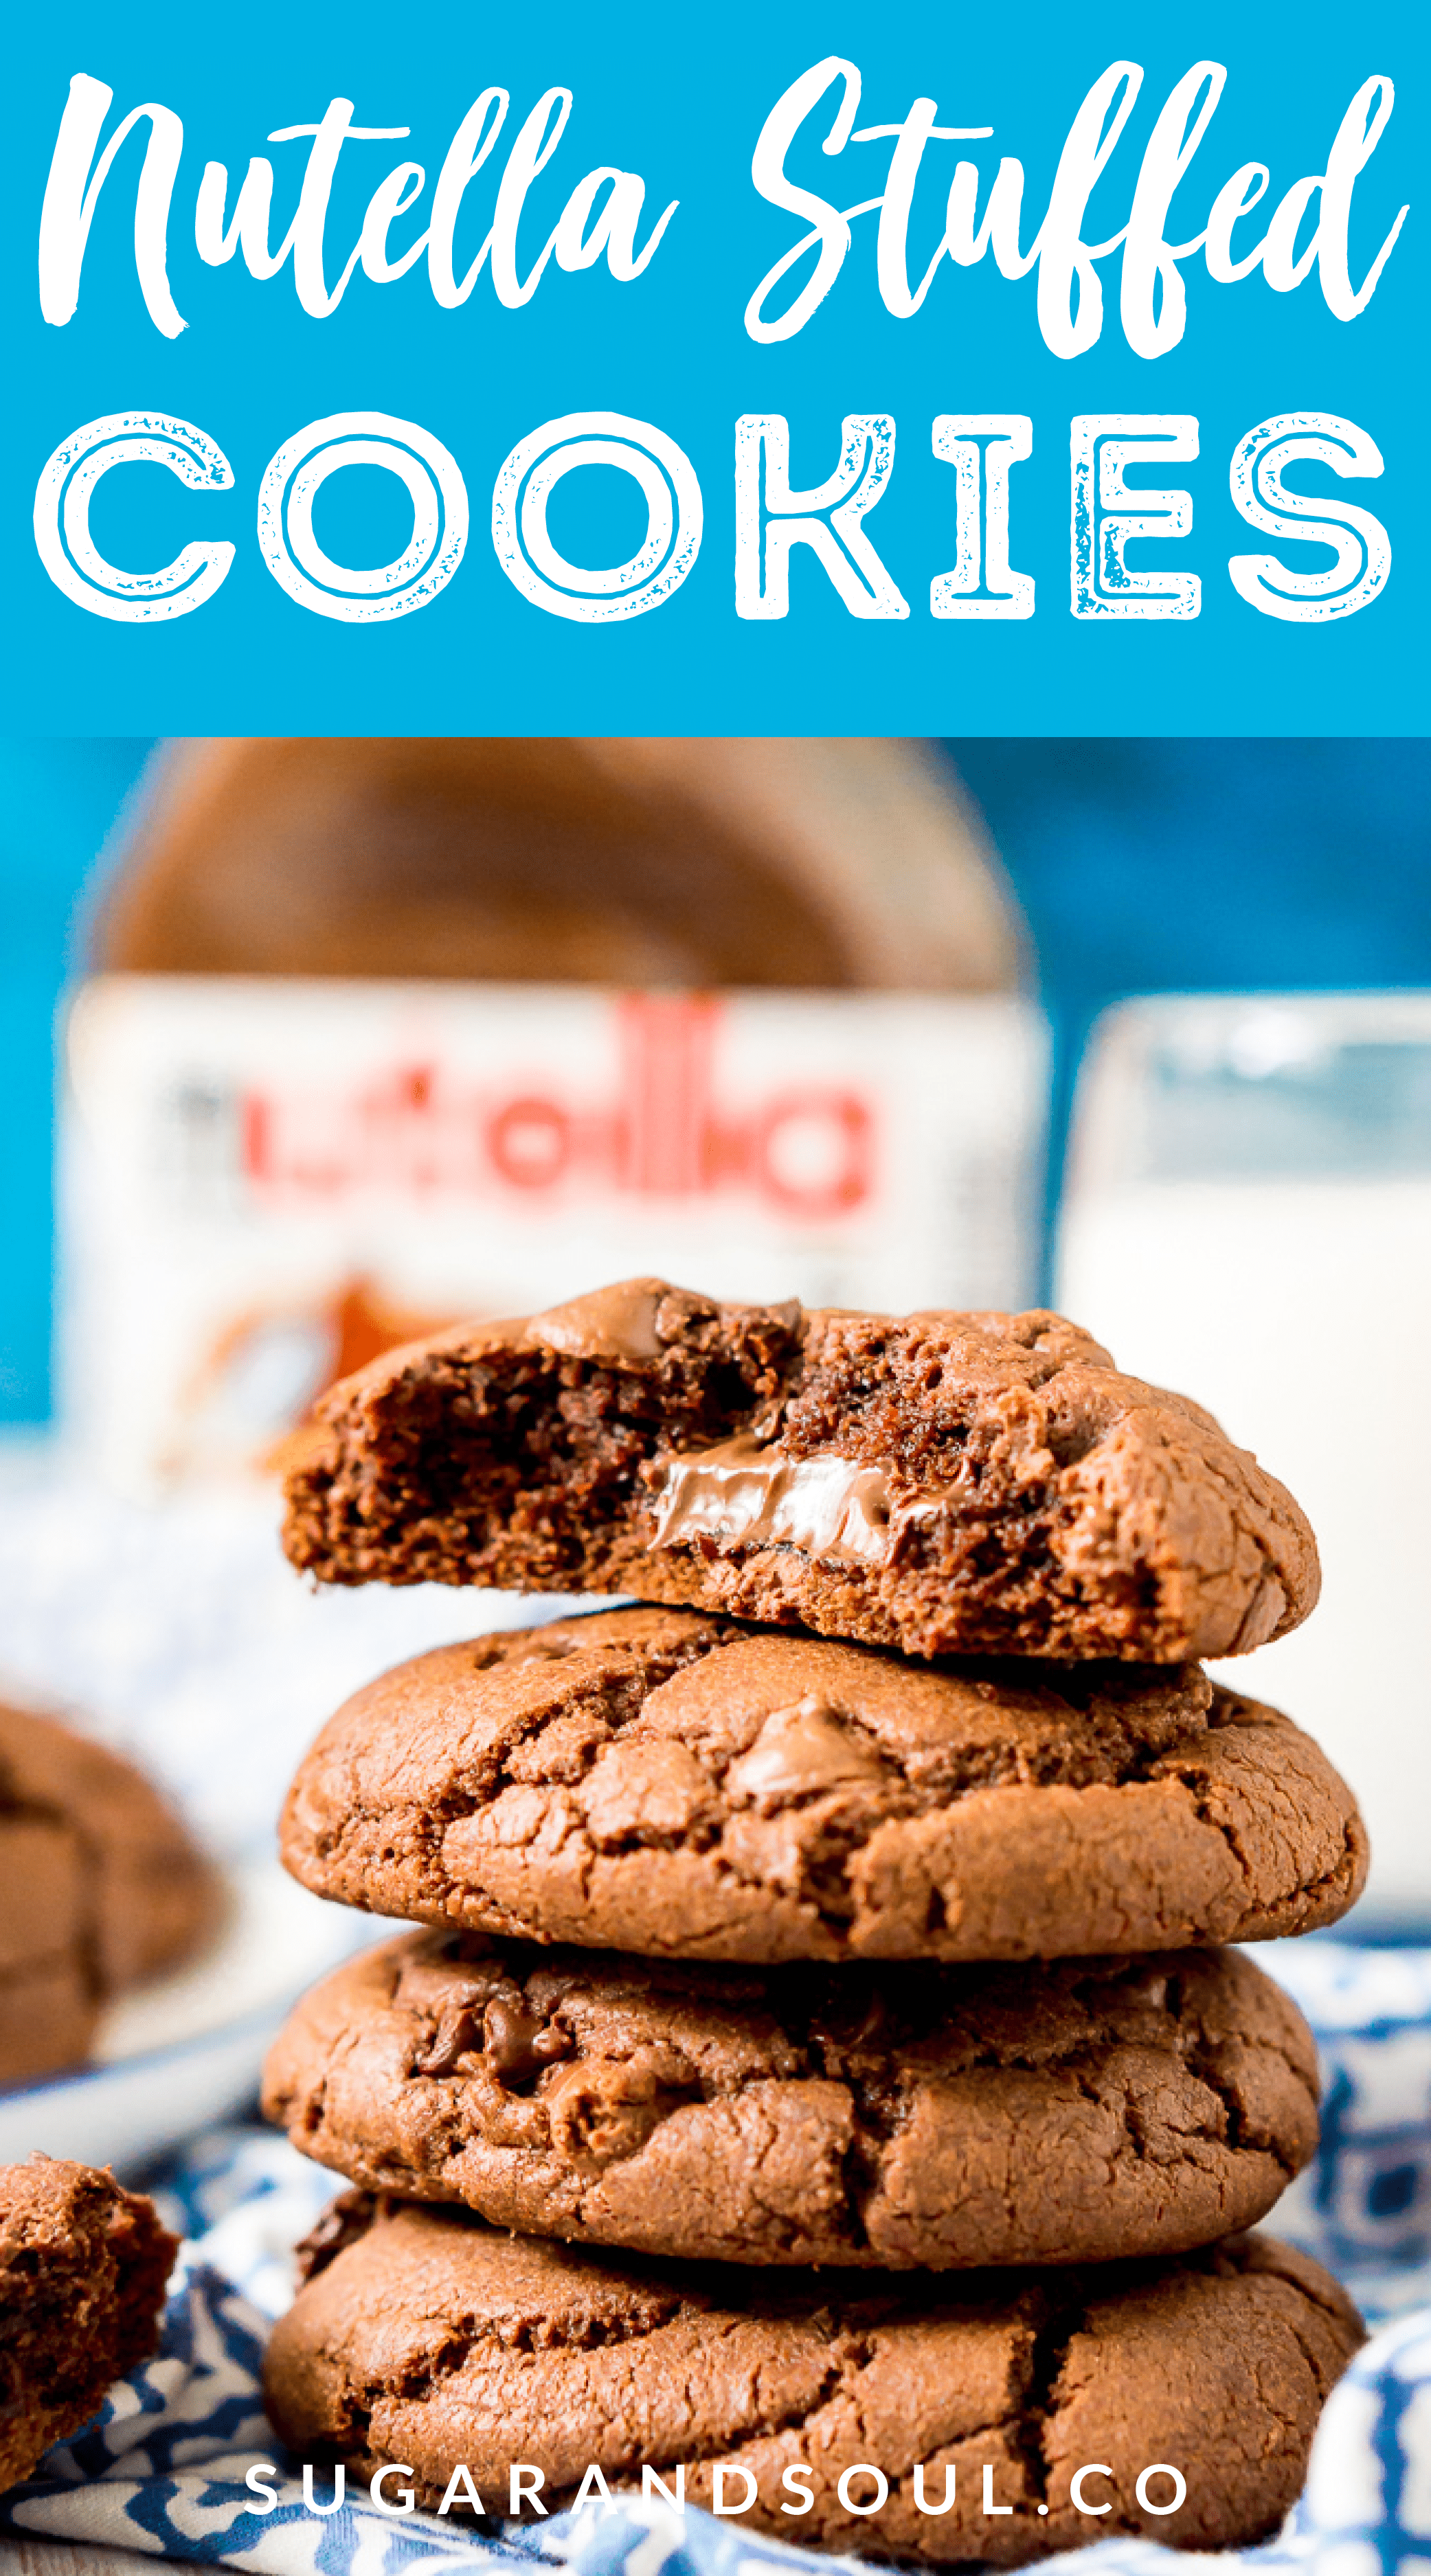 These Nutella Stuffed Cookies are a delicious double chocolate chip cookie that's laced with Nutella and stuffed with a gooey hazelnut chocolate filling. via @sugarandsoulco